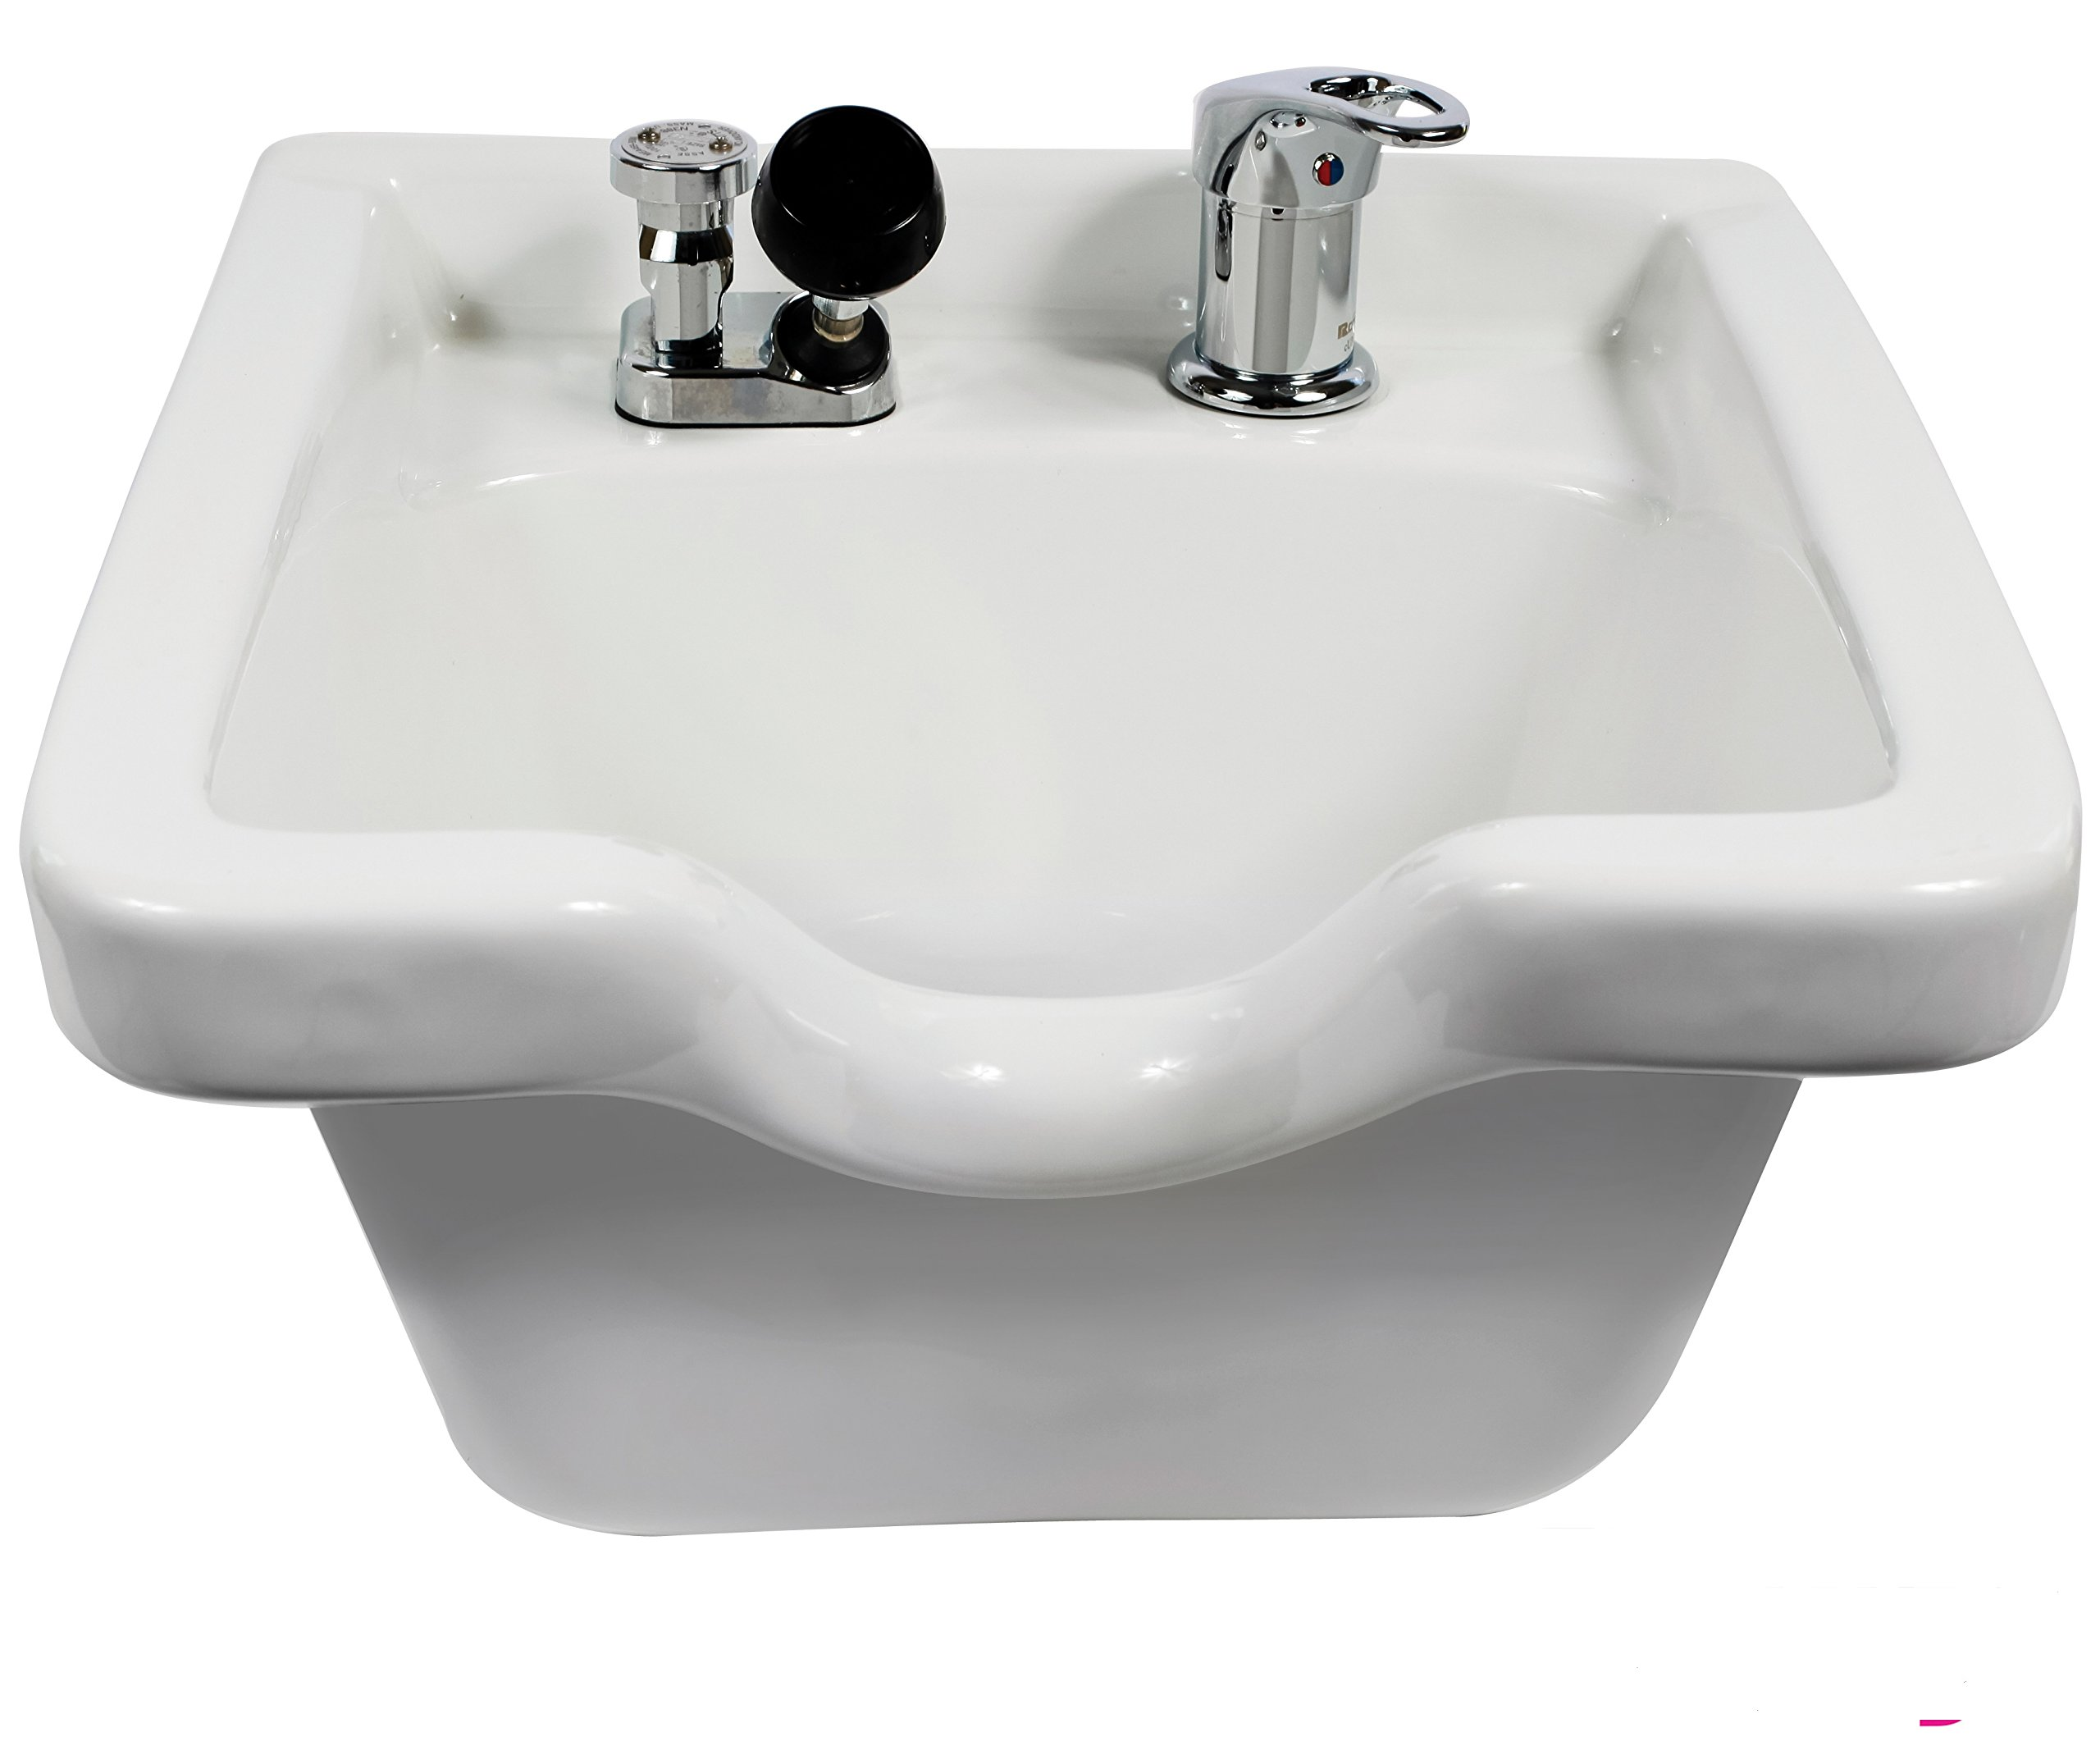 Pro Hair Tools Salon Barber Porcelain Wall Mounted Square Shampoo Bowl In (WHITE) + Free Cape Co. Cutting Cape ($29 value)